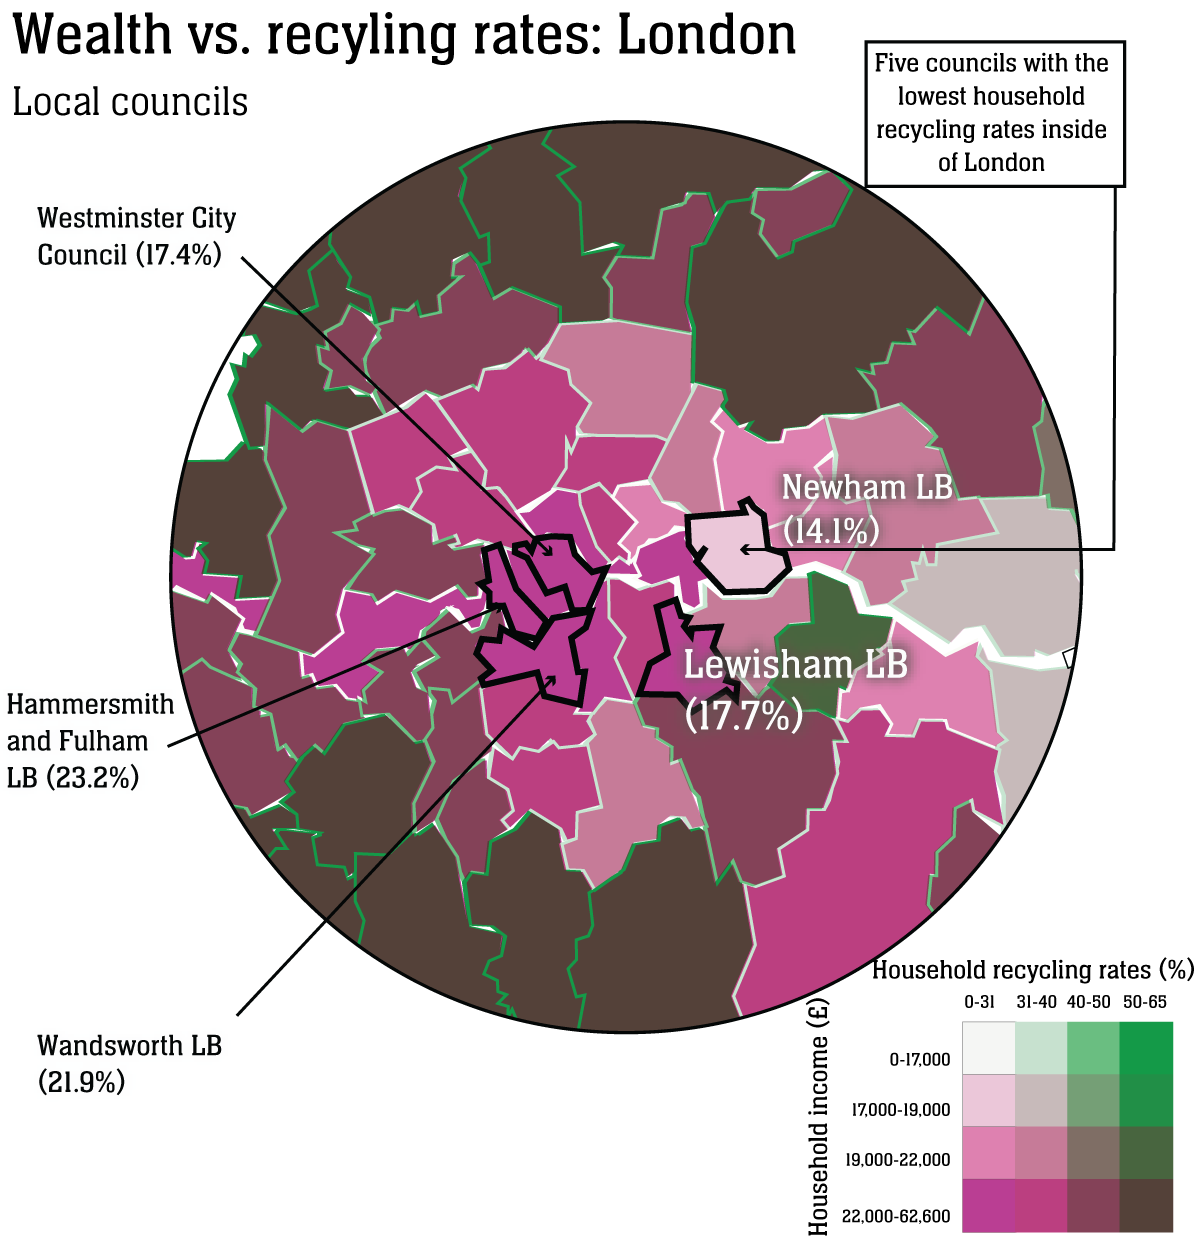 Household waste recycling vs. income - London